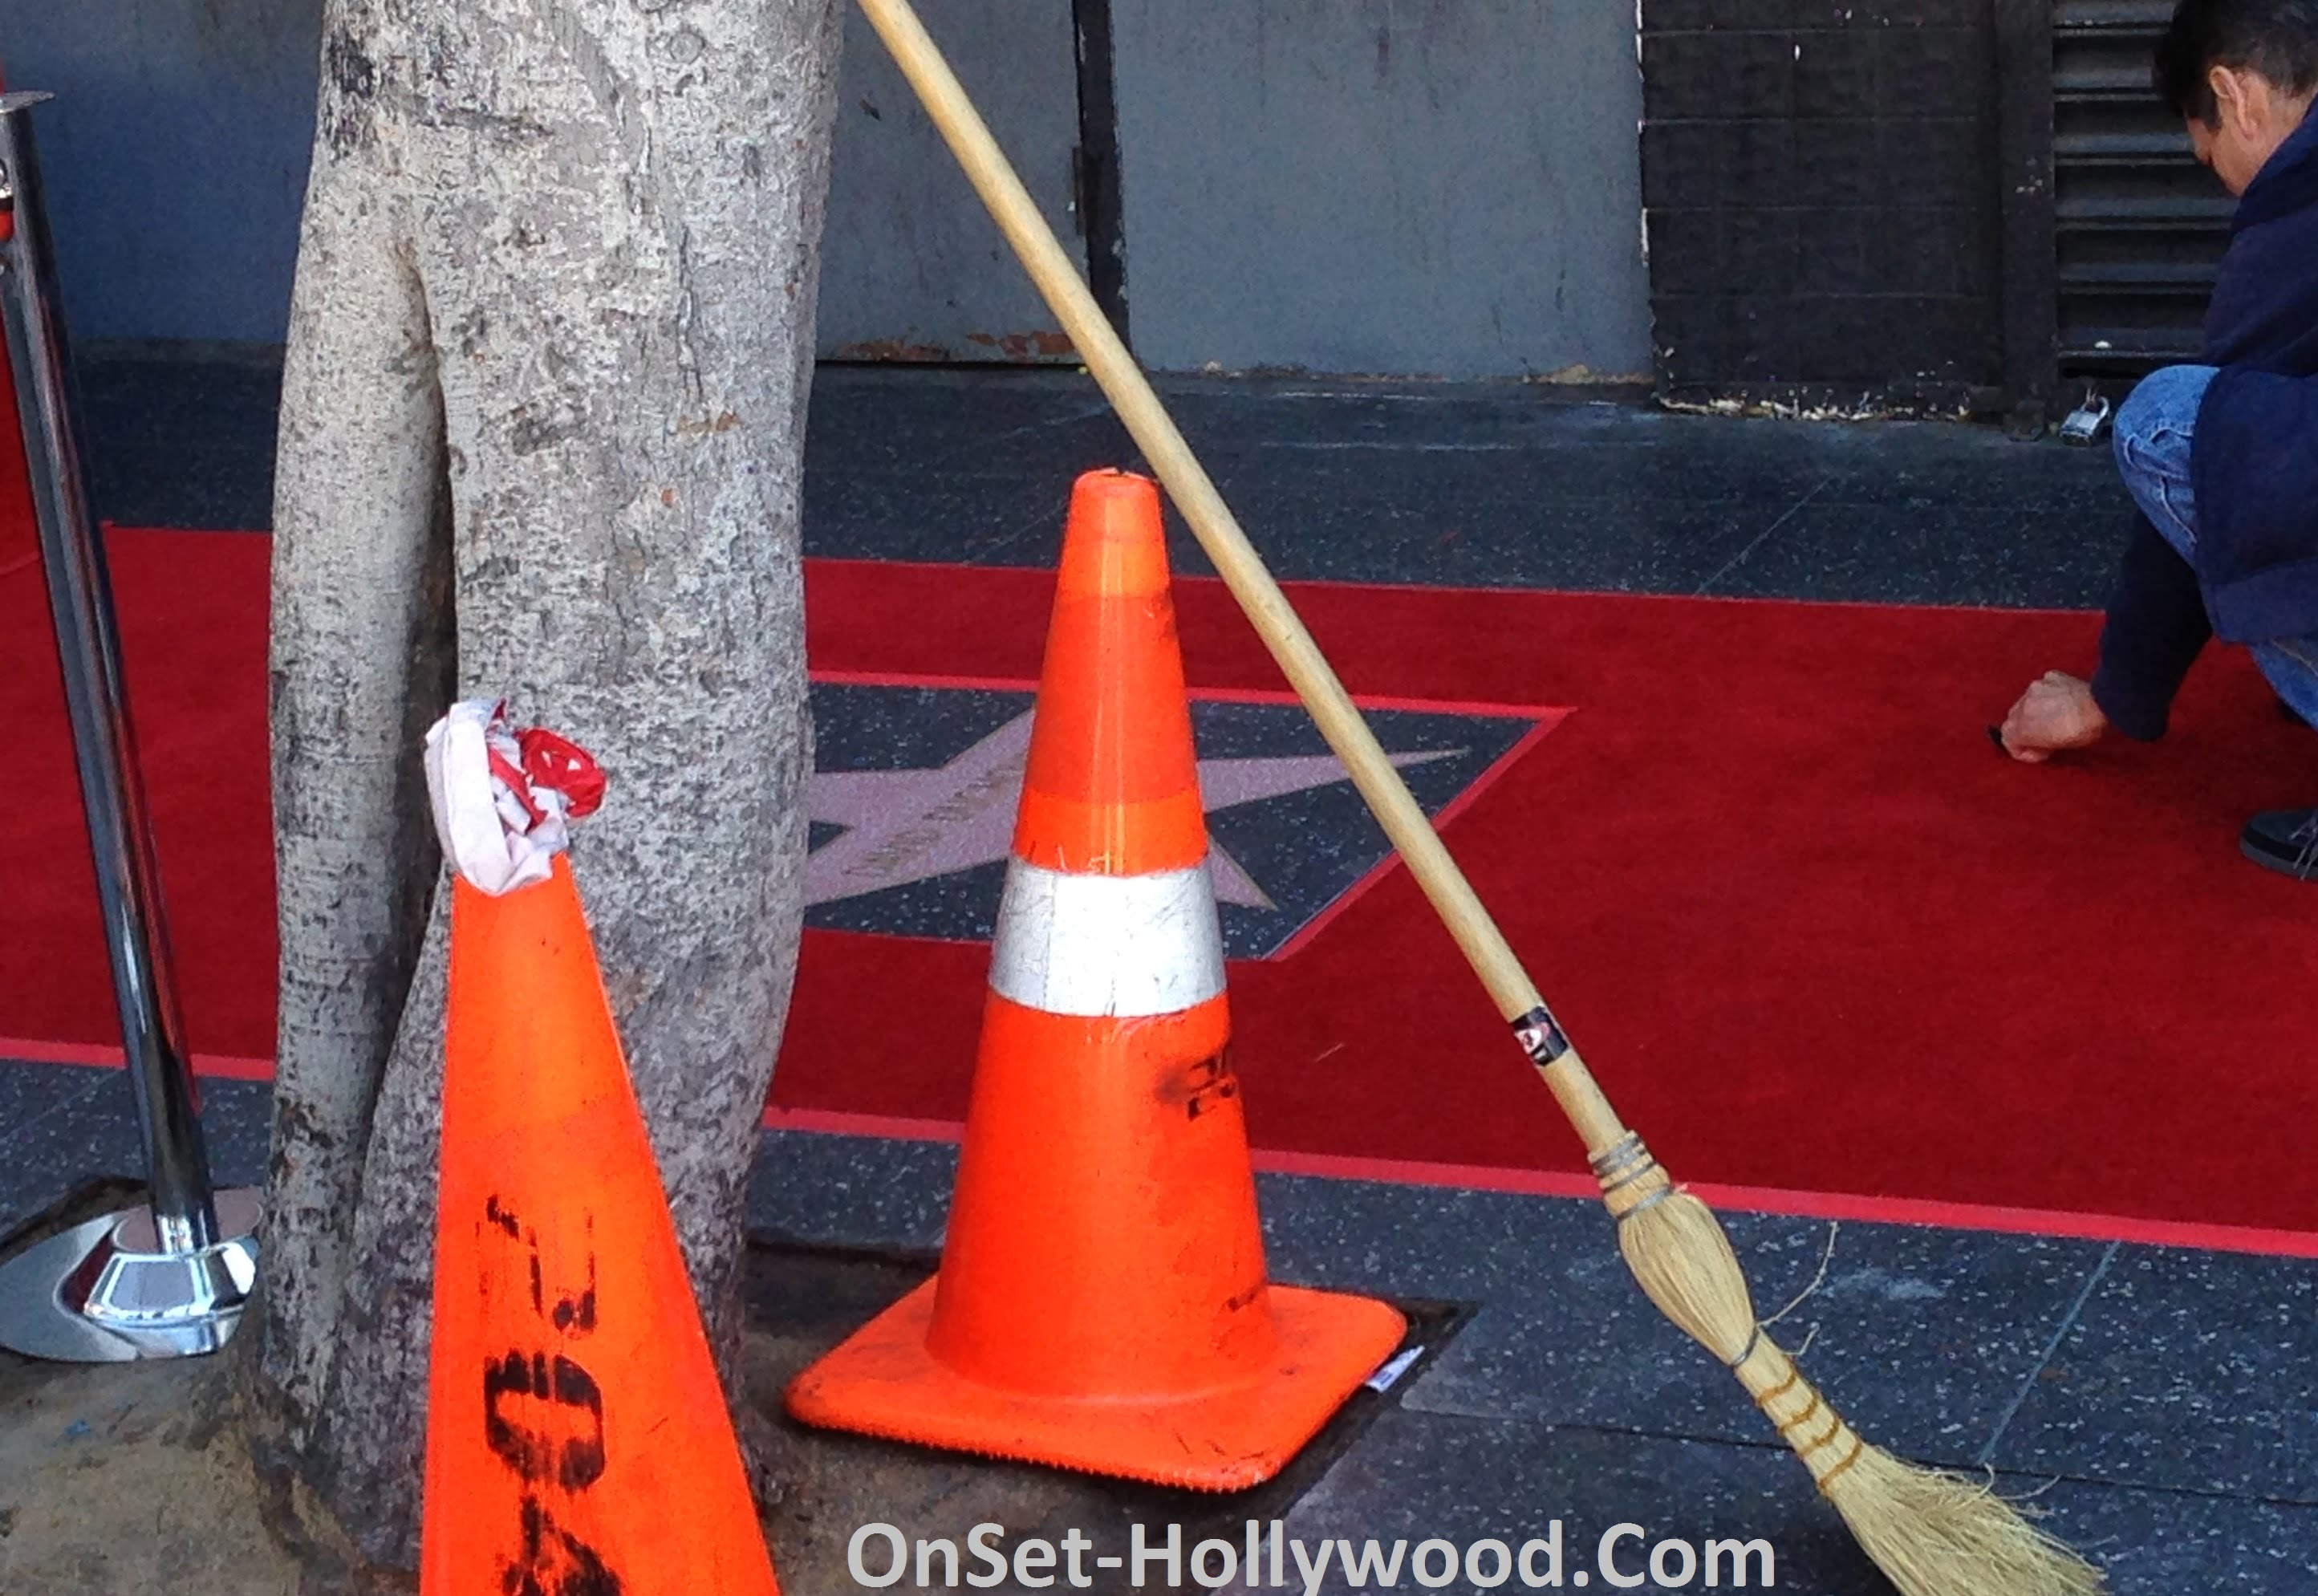 david-duchovny-gets-star-hollywood-walk-of-fame-4